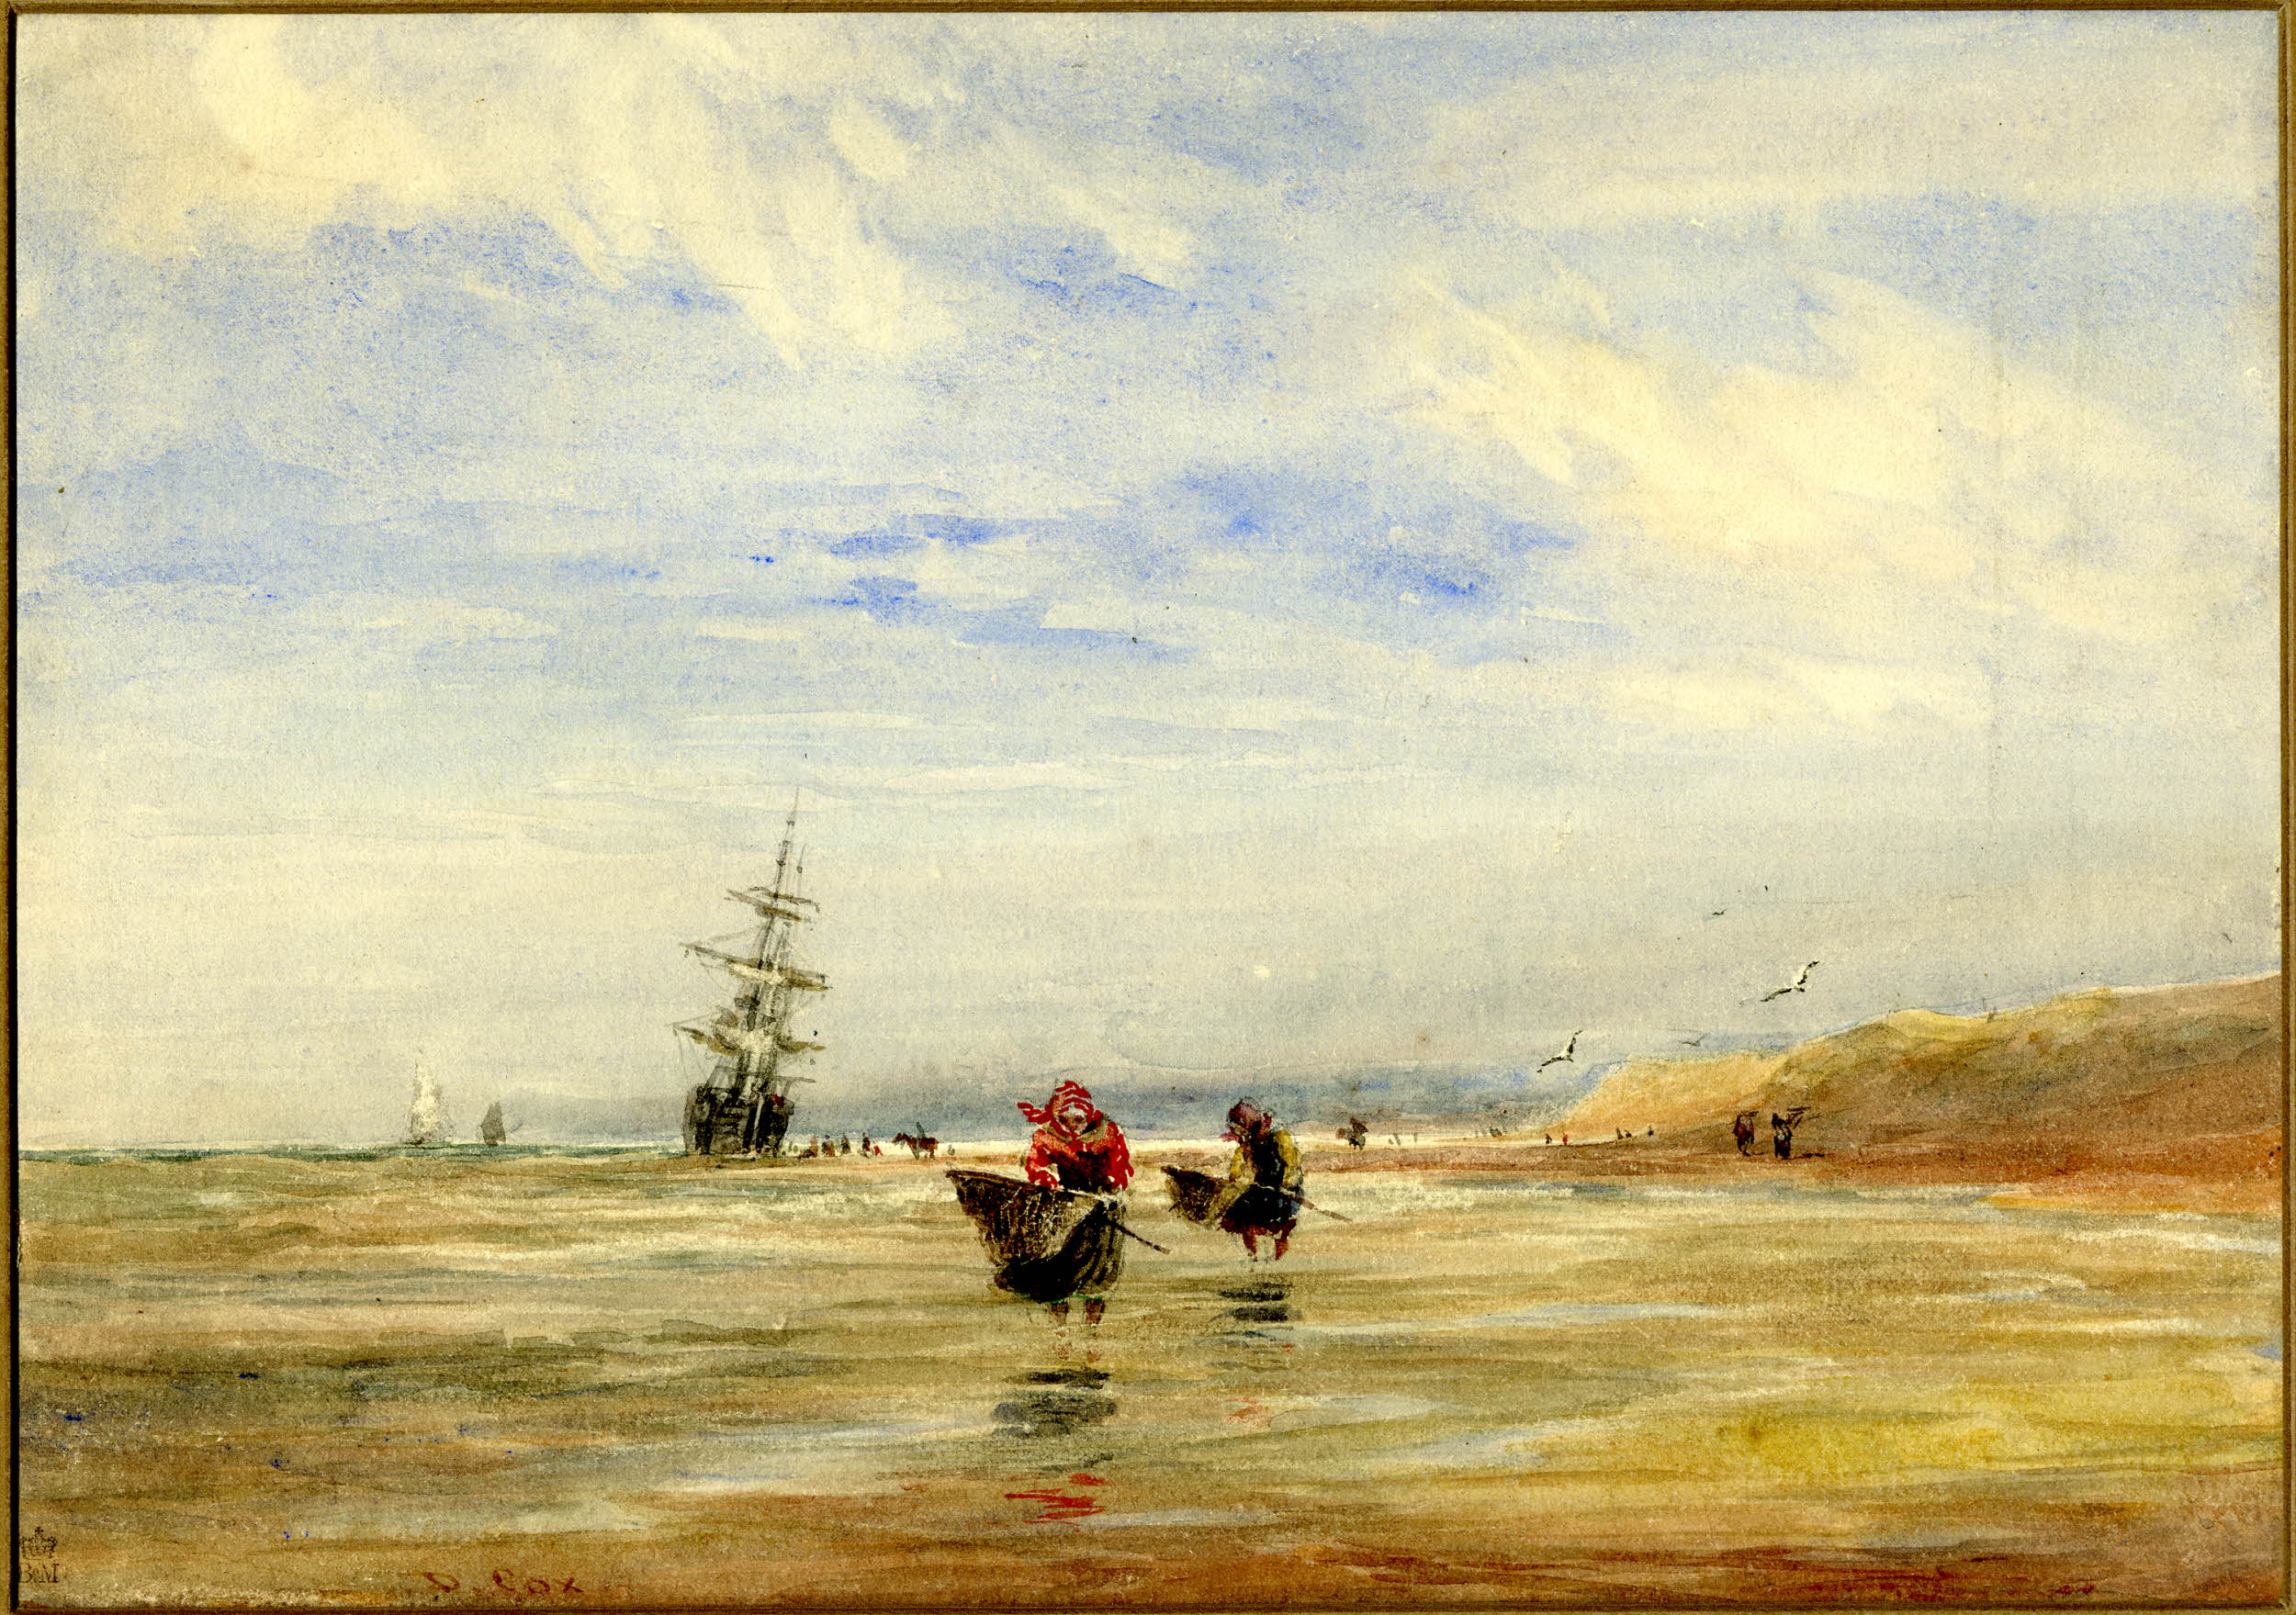 Watercolour painting of a beach scene: two women, centre, wade in the shallows with shrimping nets; other people dotted along the shoreline; a ship and two sailing boats visible in the sea.